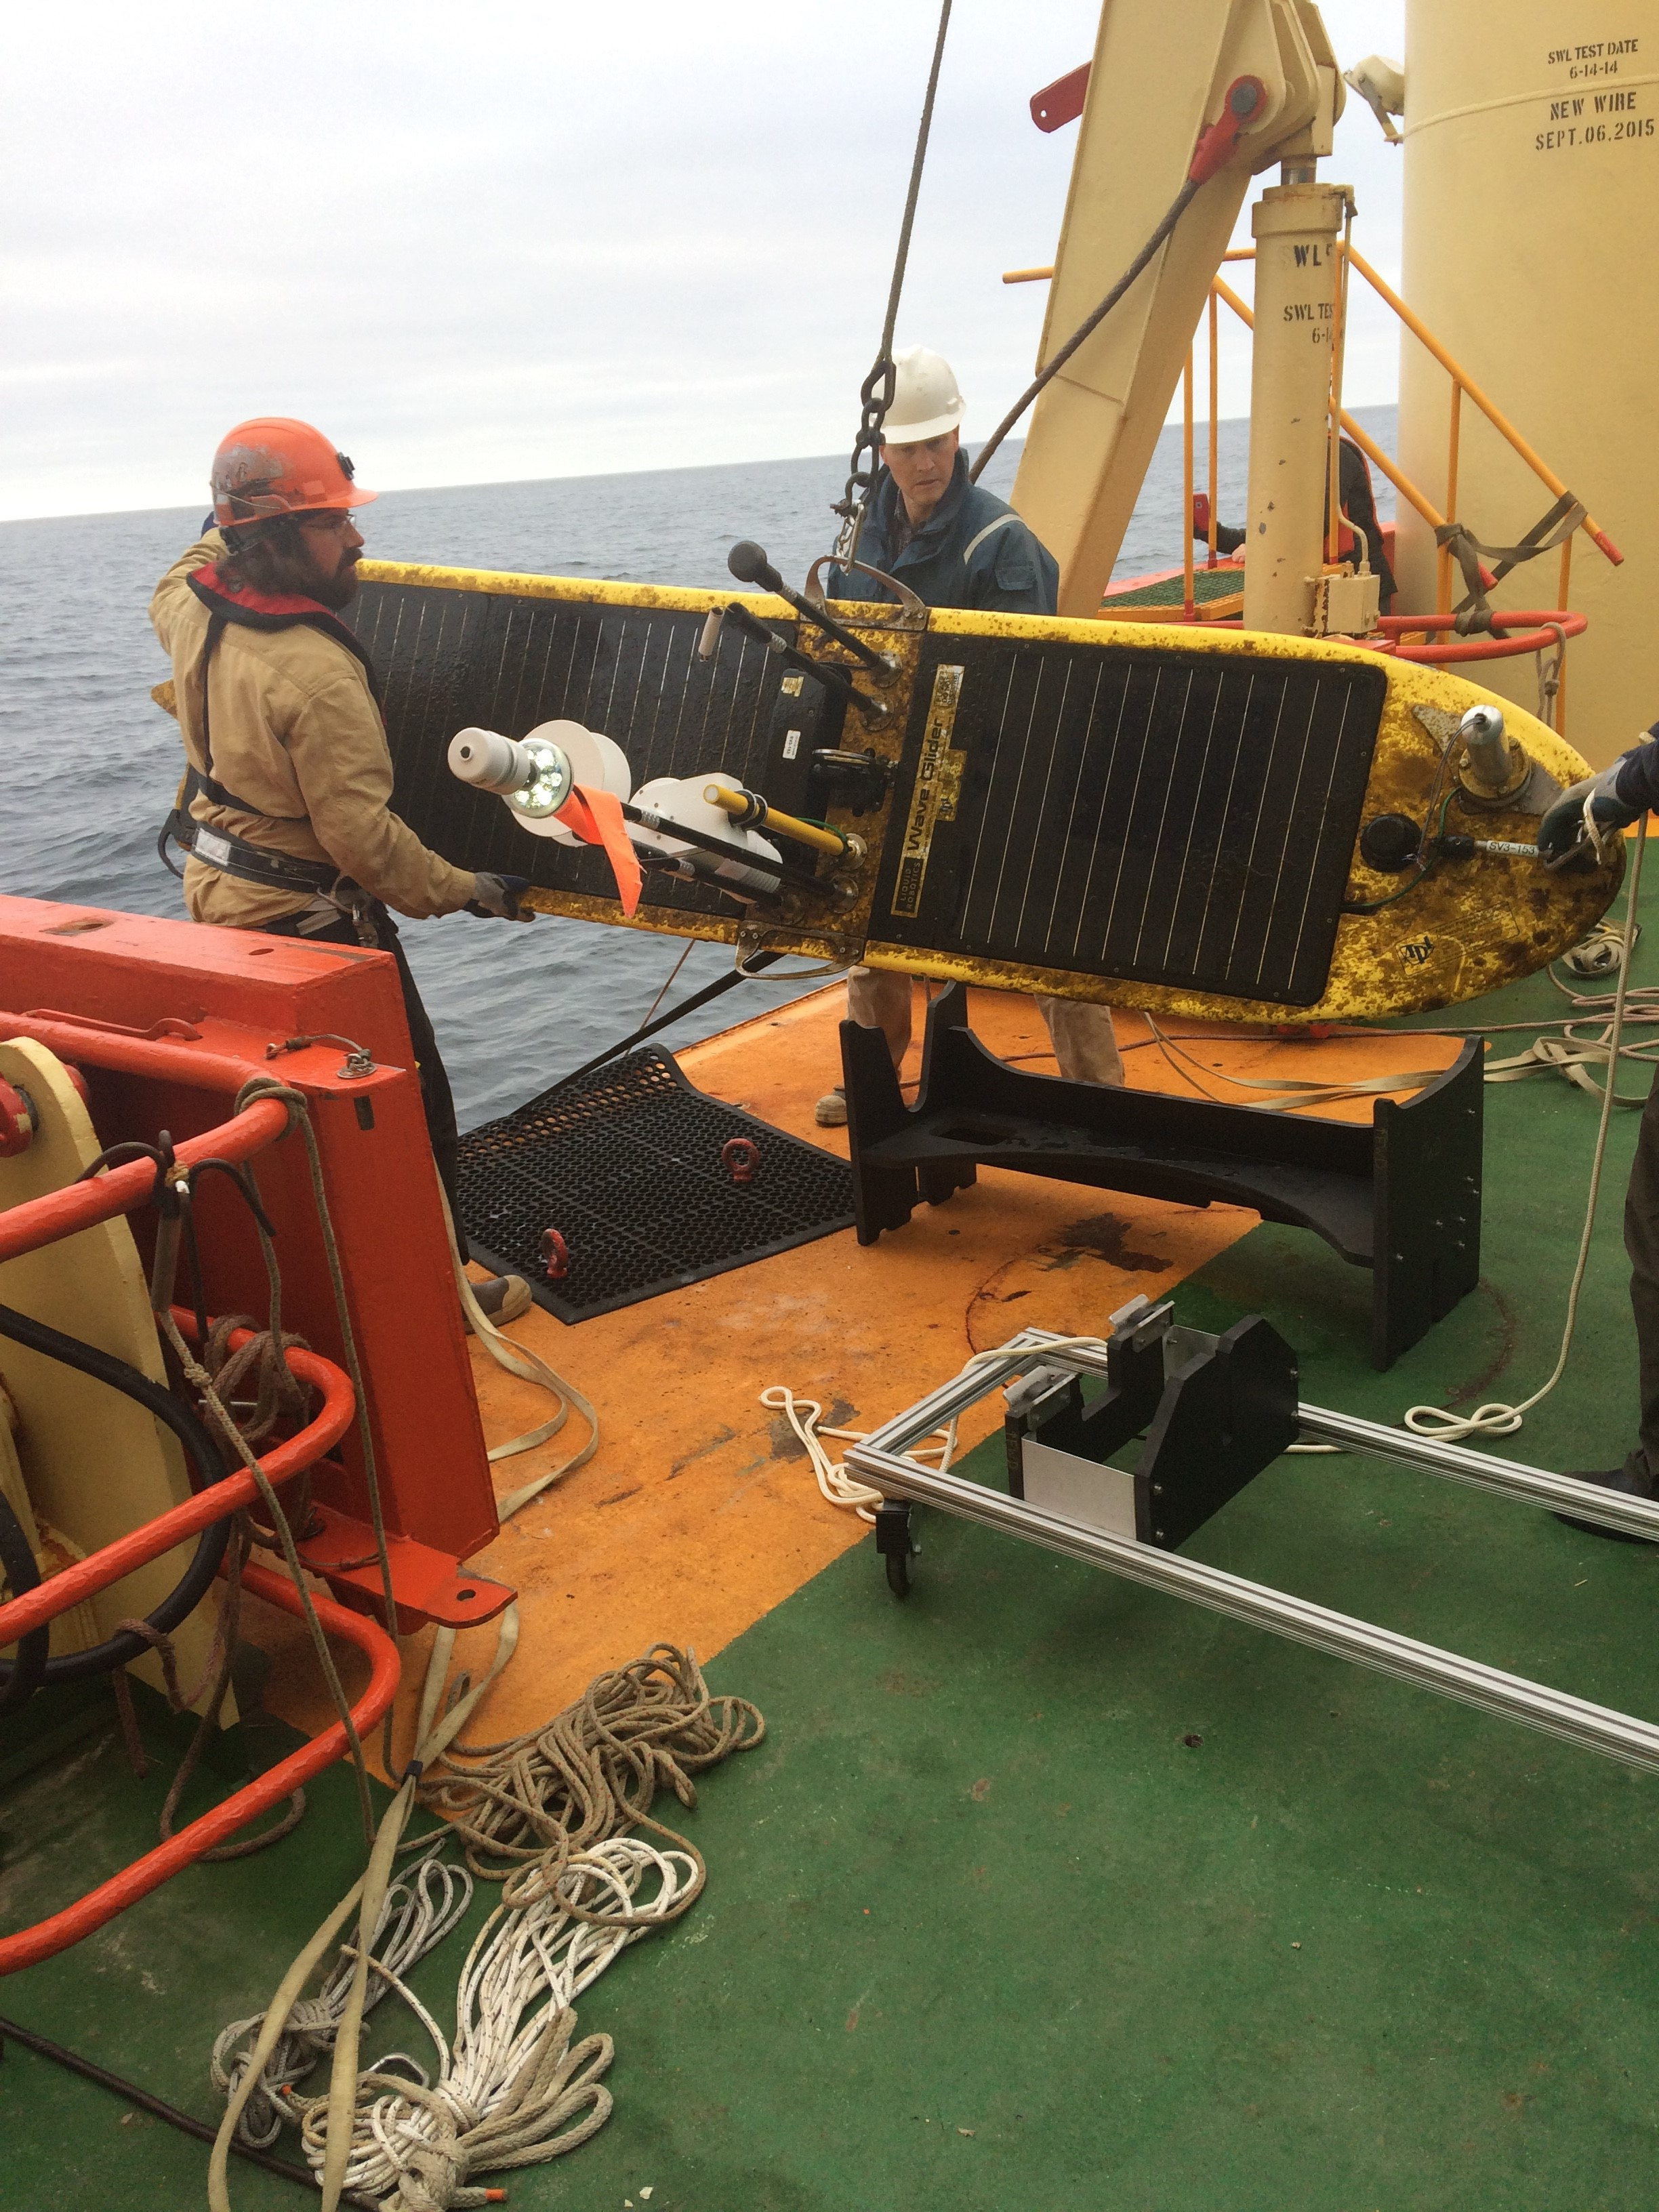 Making waves in the Southern Ocean